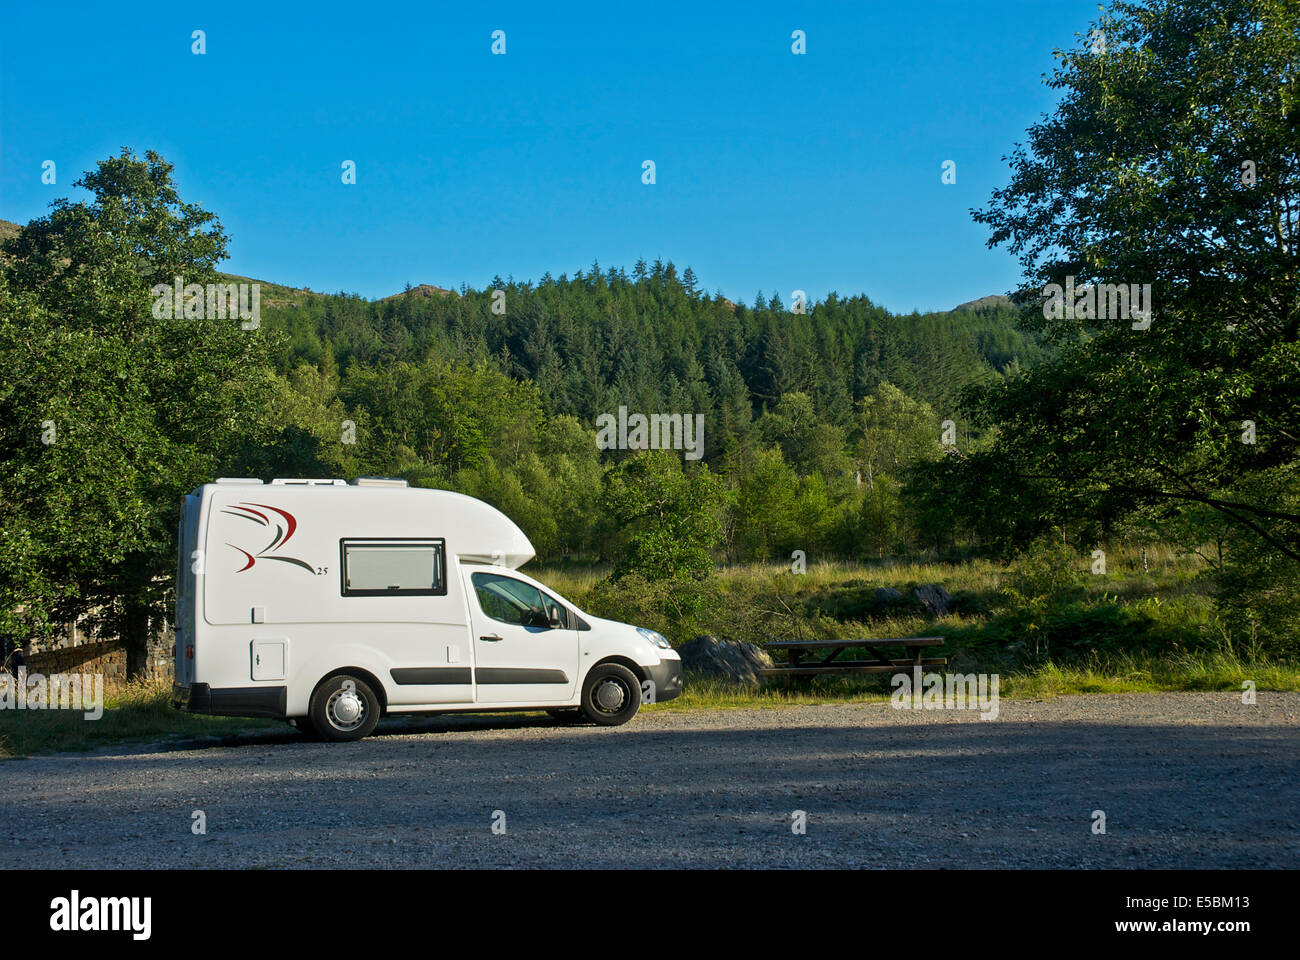 Romahome R25 parked in the Duddon Valley, Lake District National Park, Cumbria, England UK - Stock Image